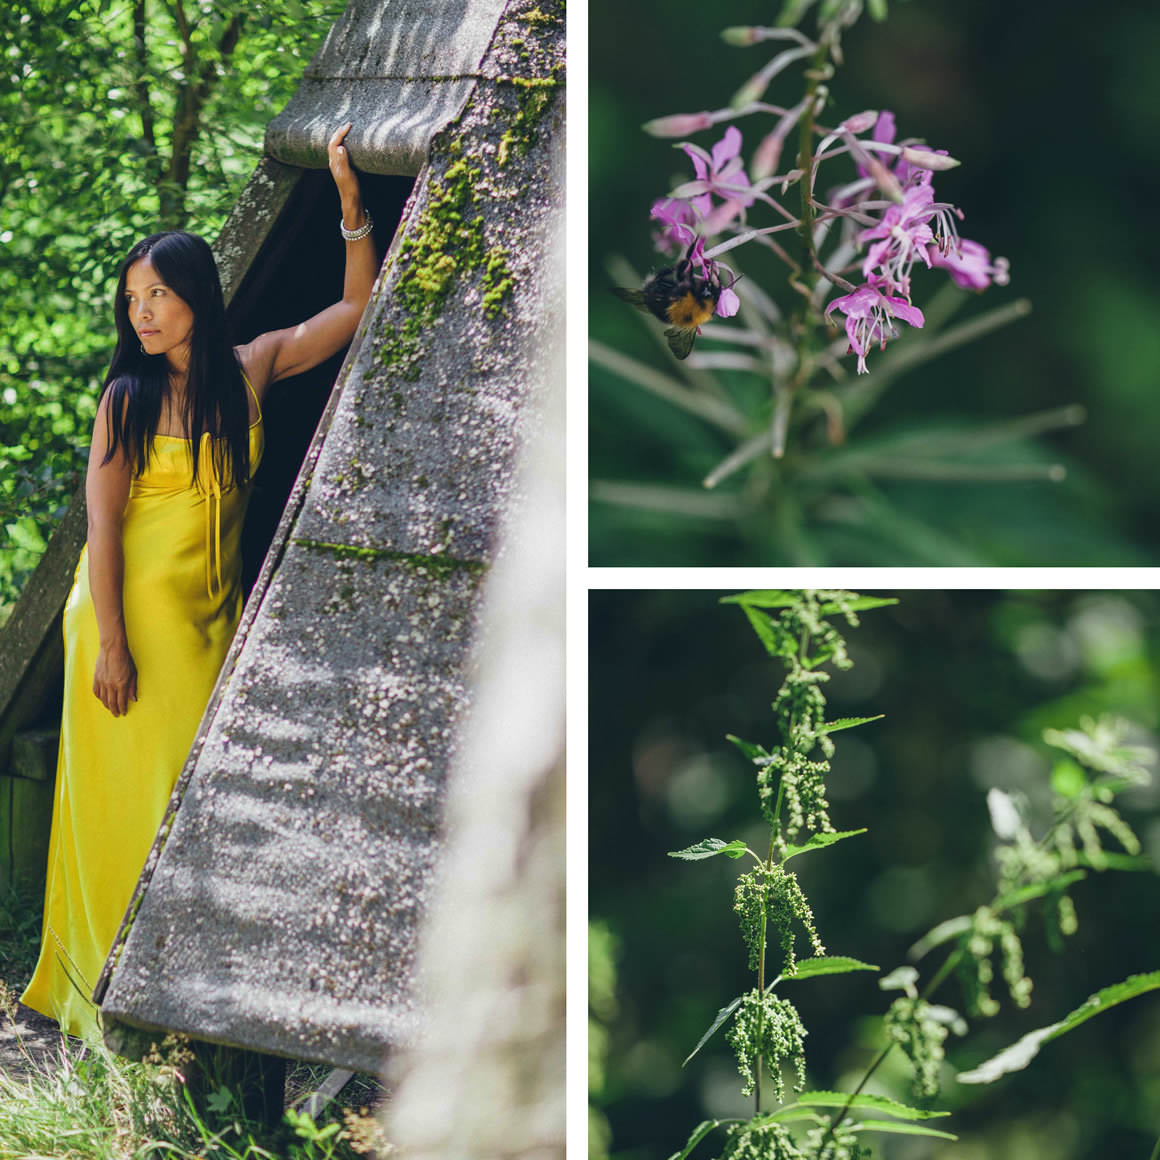 melbourne blogger as pocahontas in europe - creative forest photography